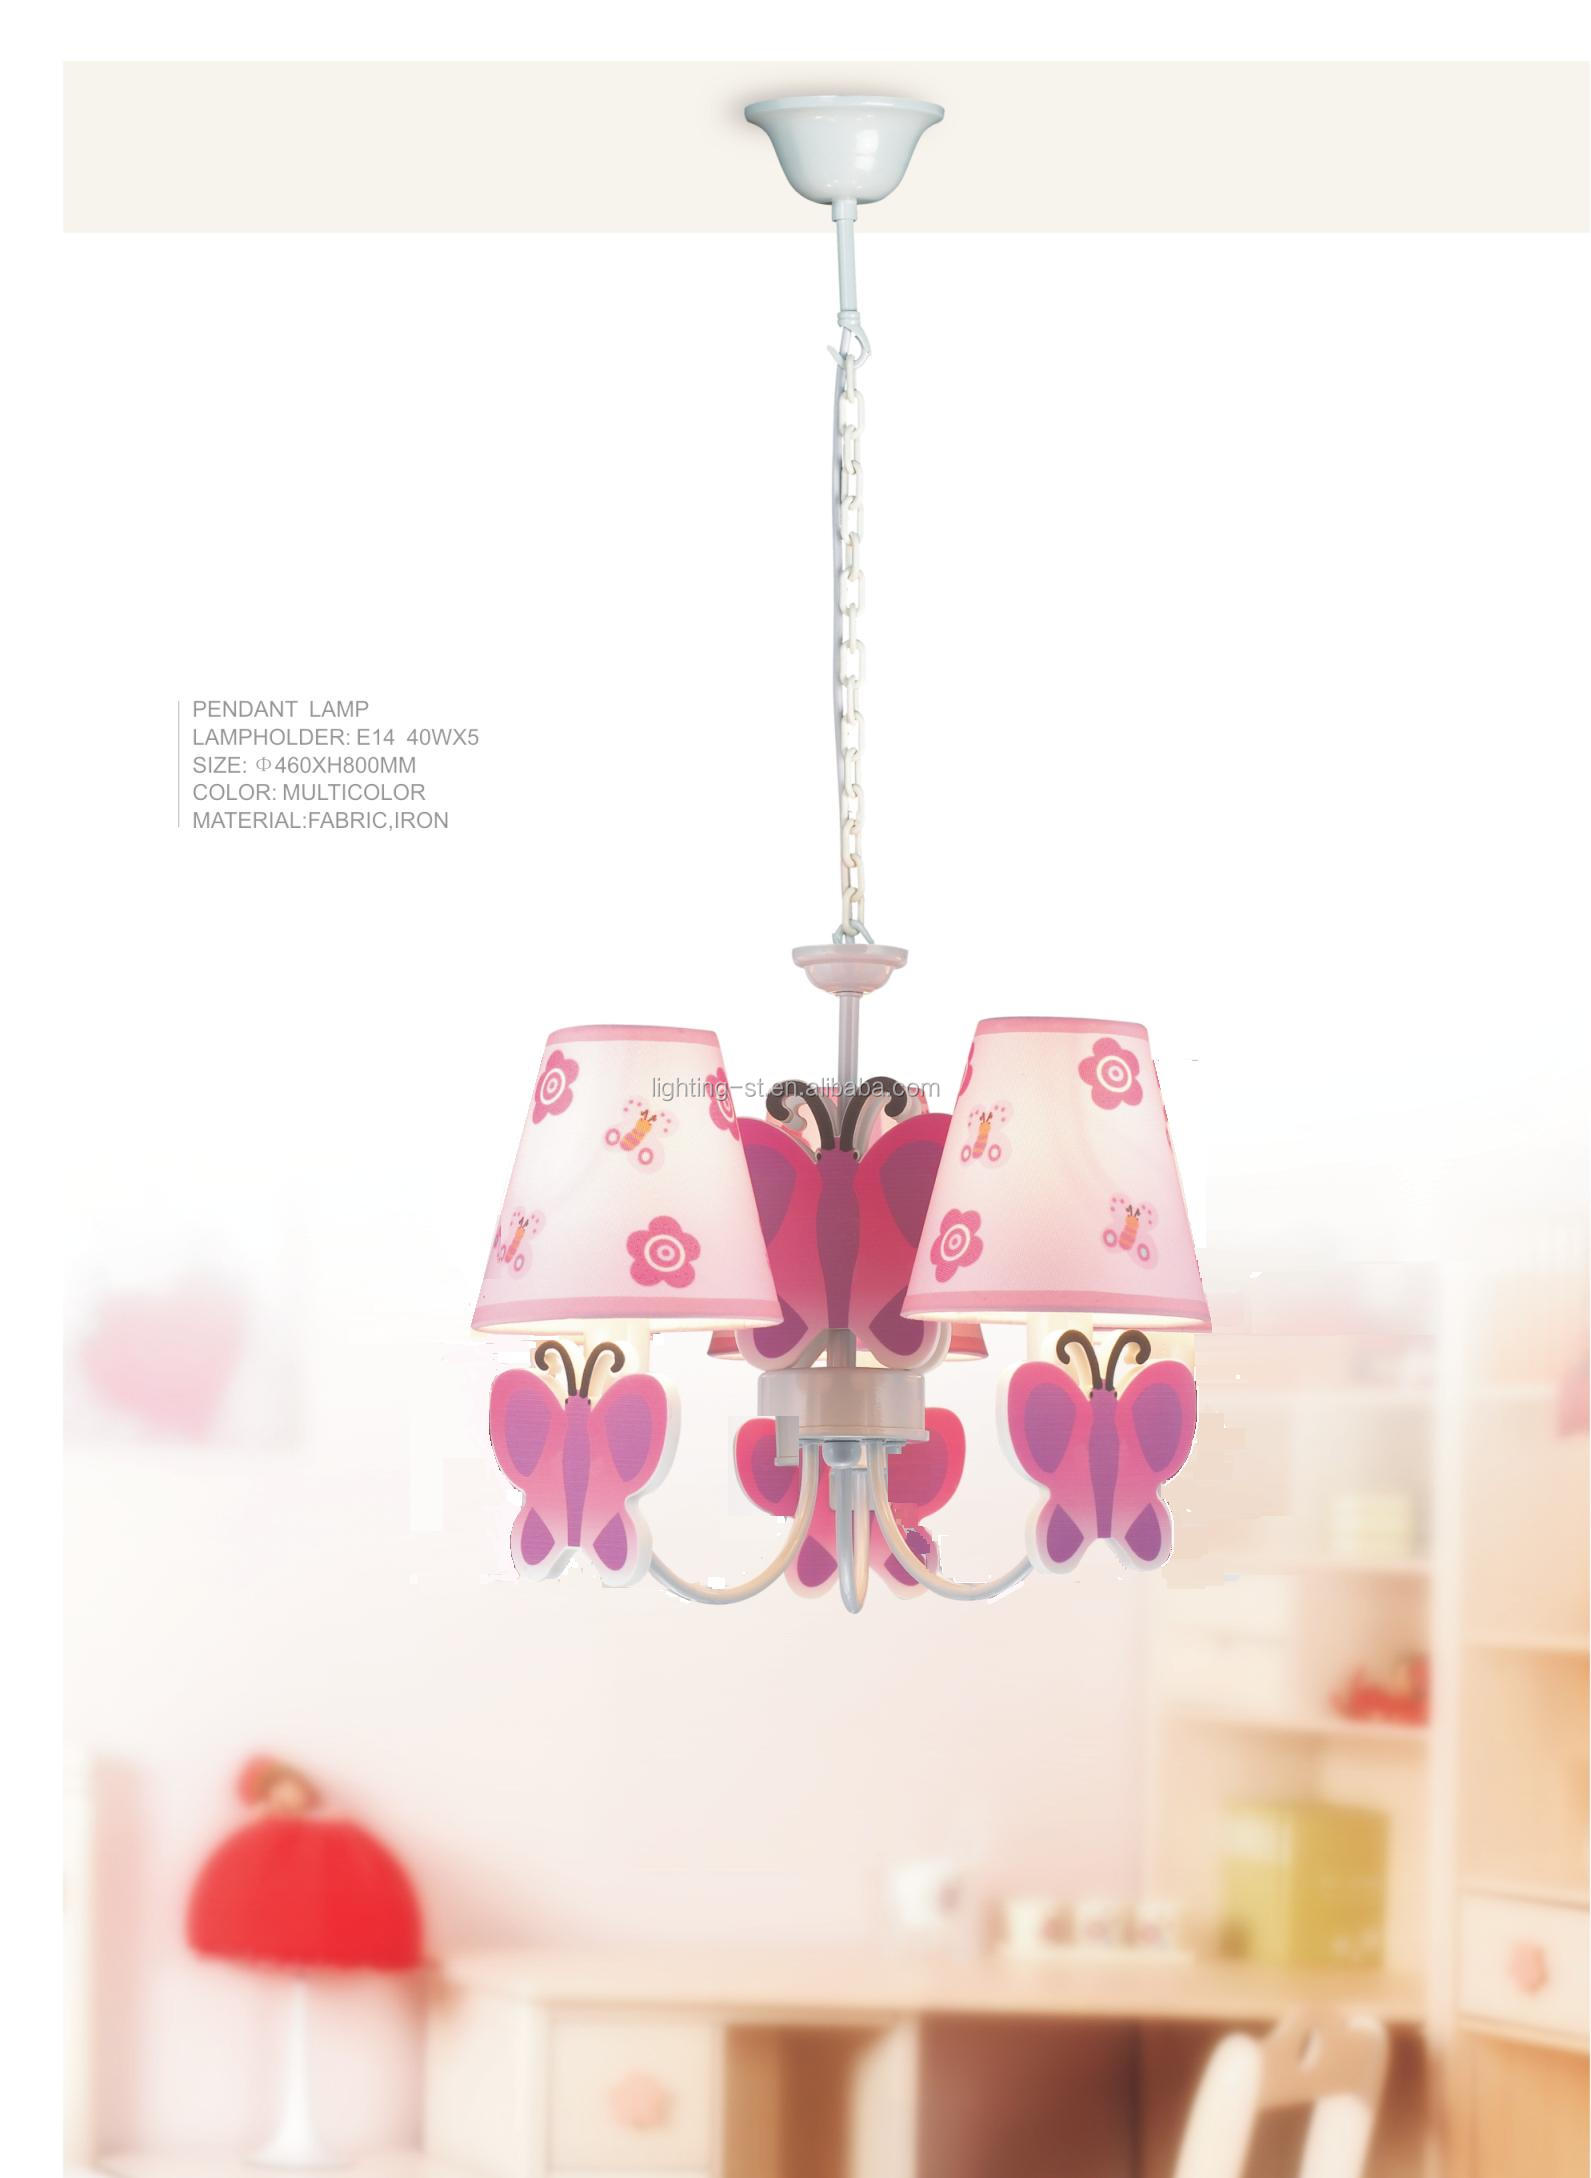 3 papillon de lumi¨re Capiz lampe suspension au plafond pour